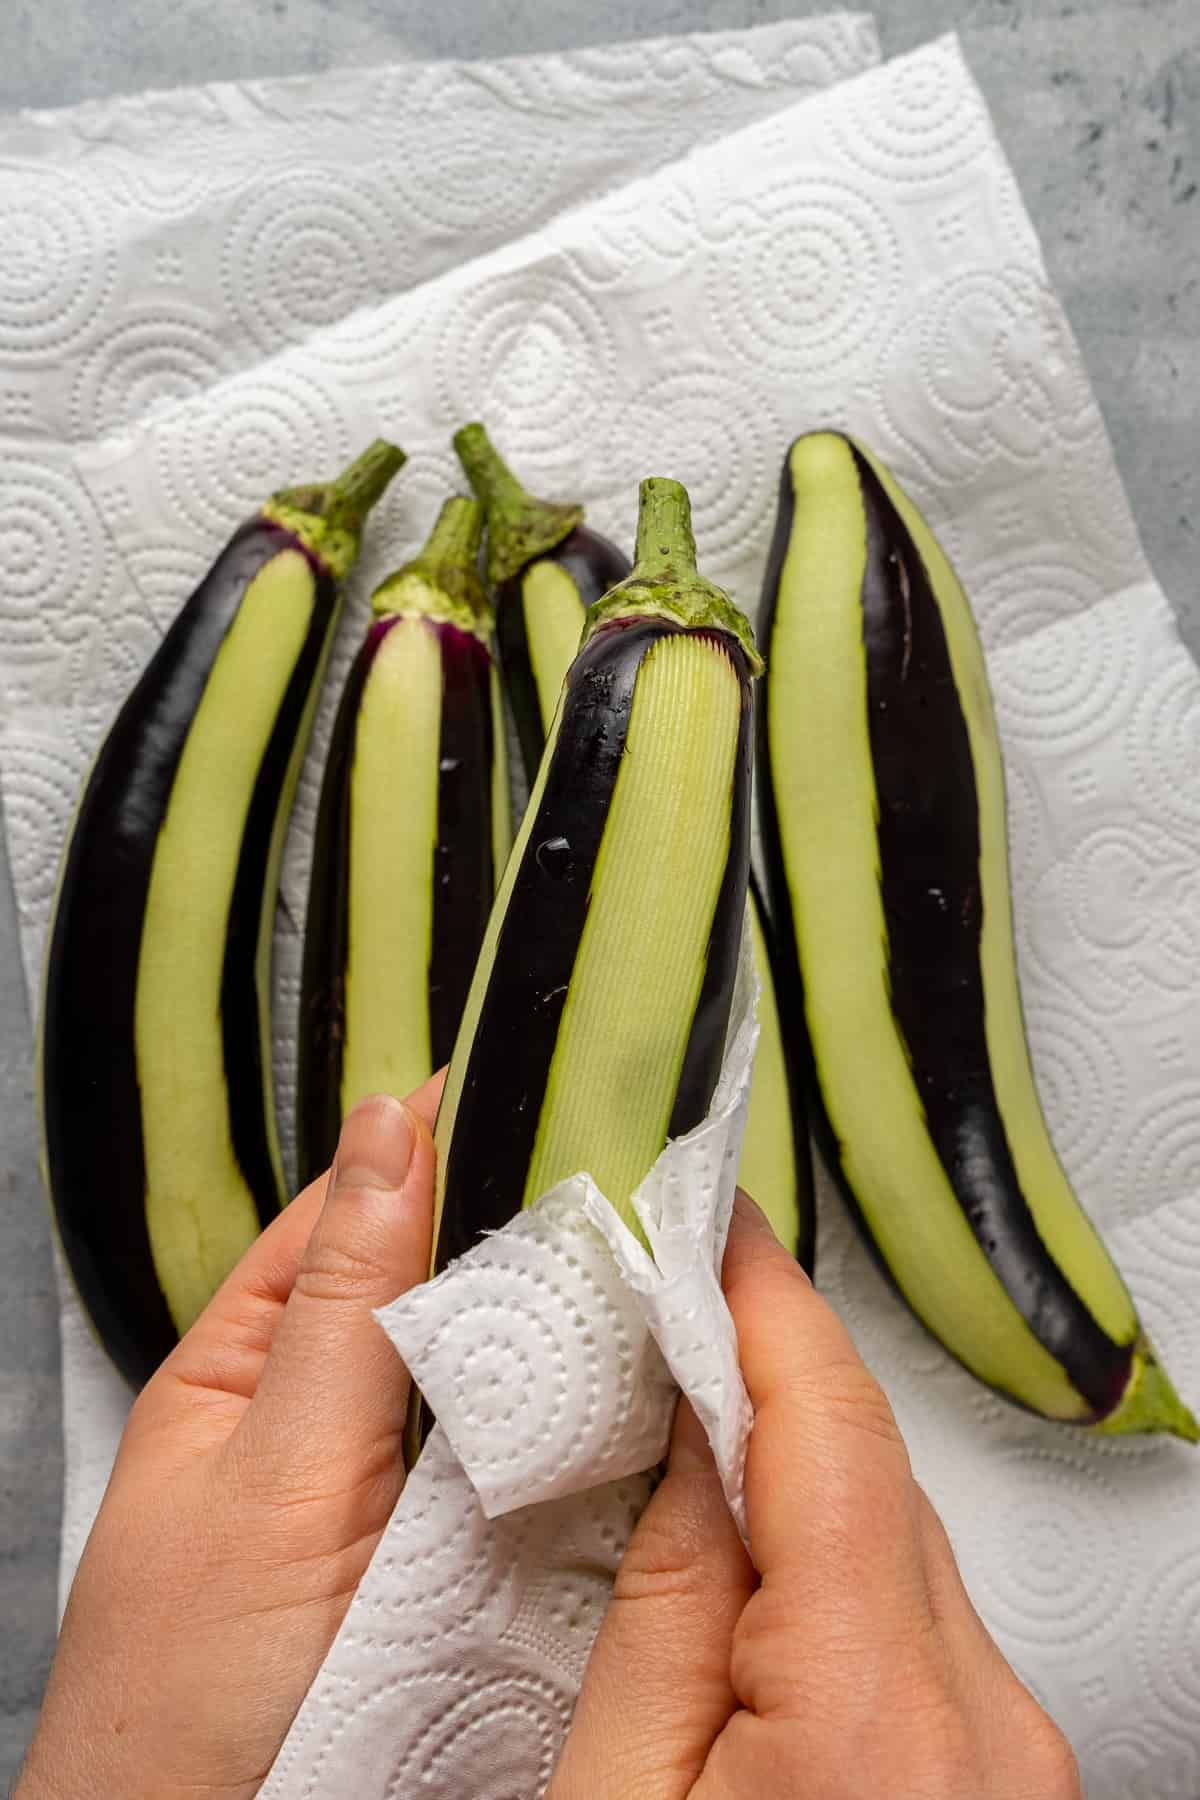 Hands drying peeled eggplants with a paper towel.